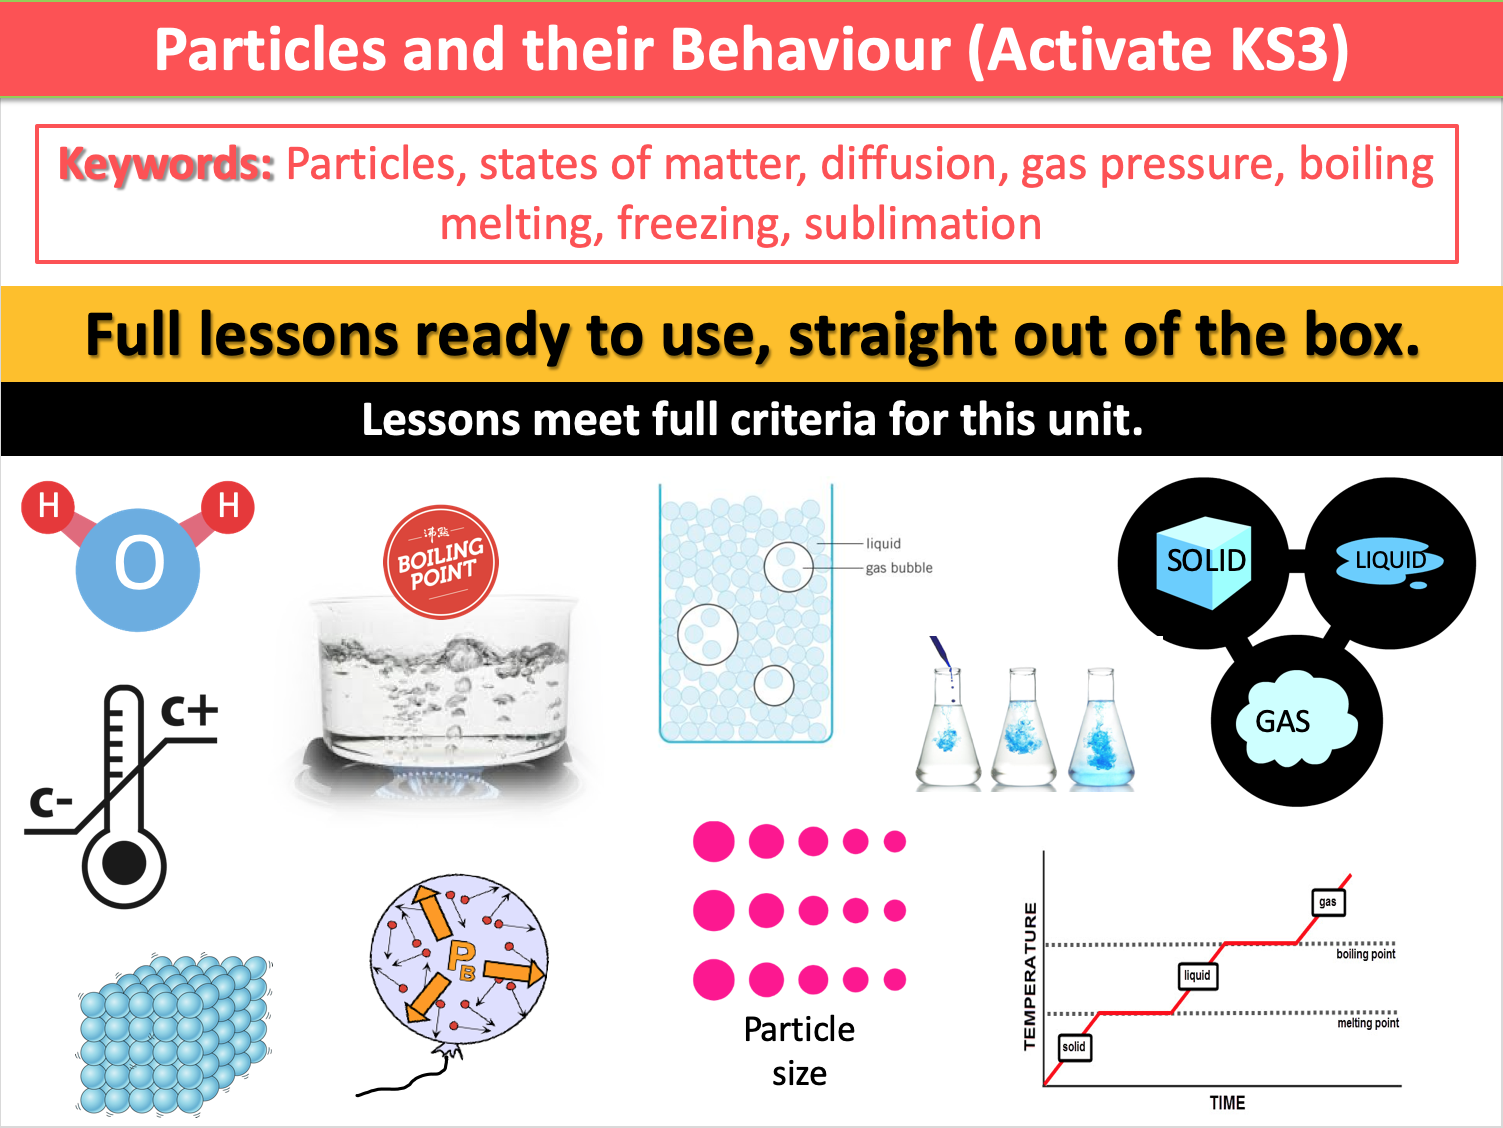 Particles and their Behaviour (Activate KS3)